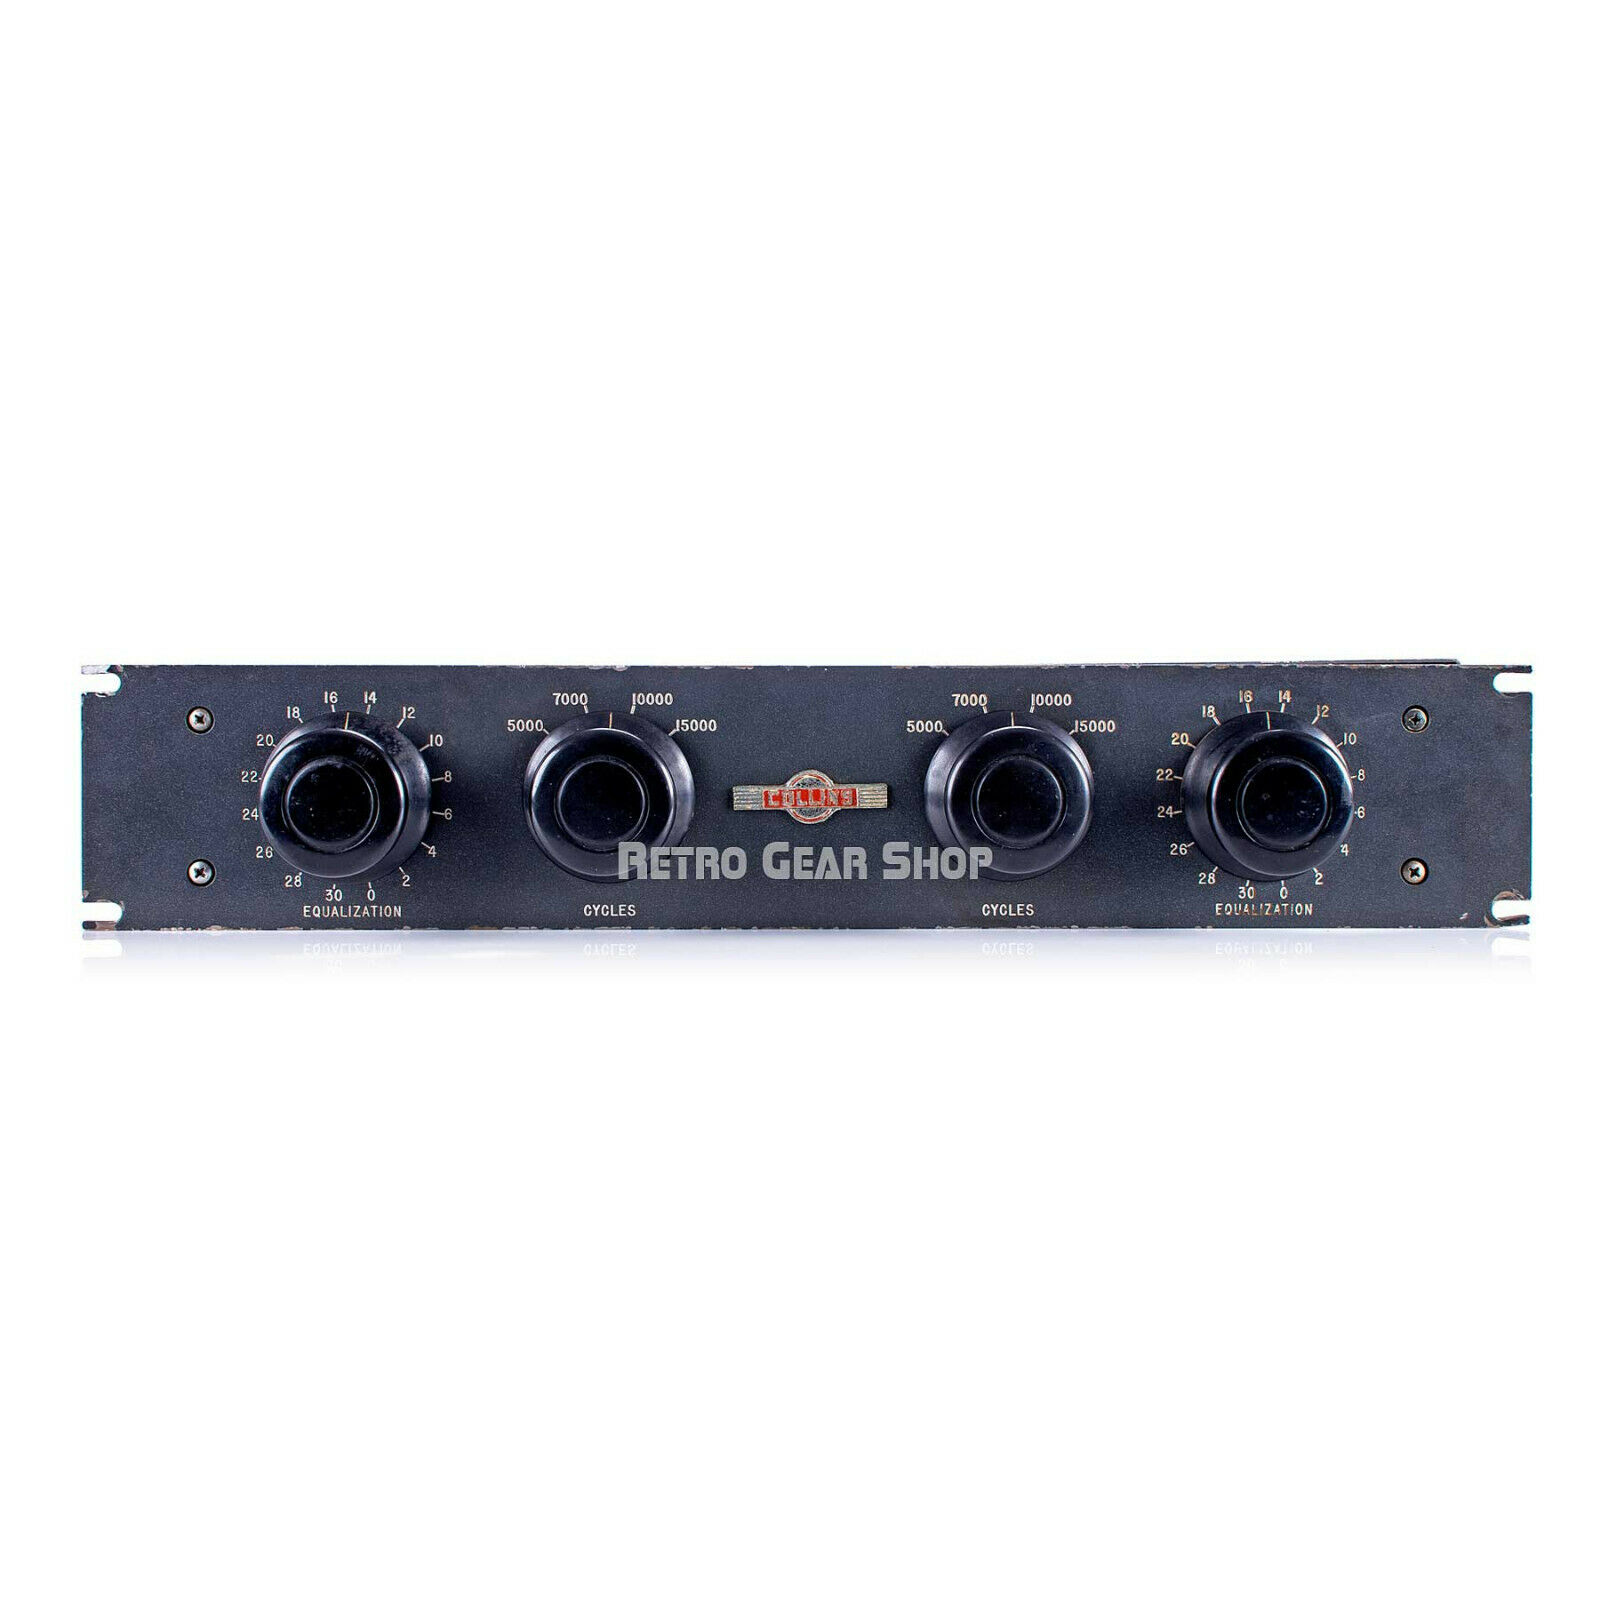 Collins 116E-4 Stereo Program Equalizer Filter EQ Rare Vintage Analog. Available Now for 3400.00